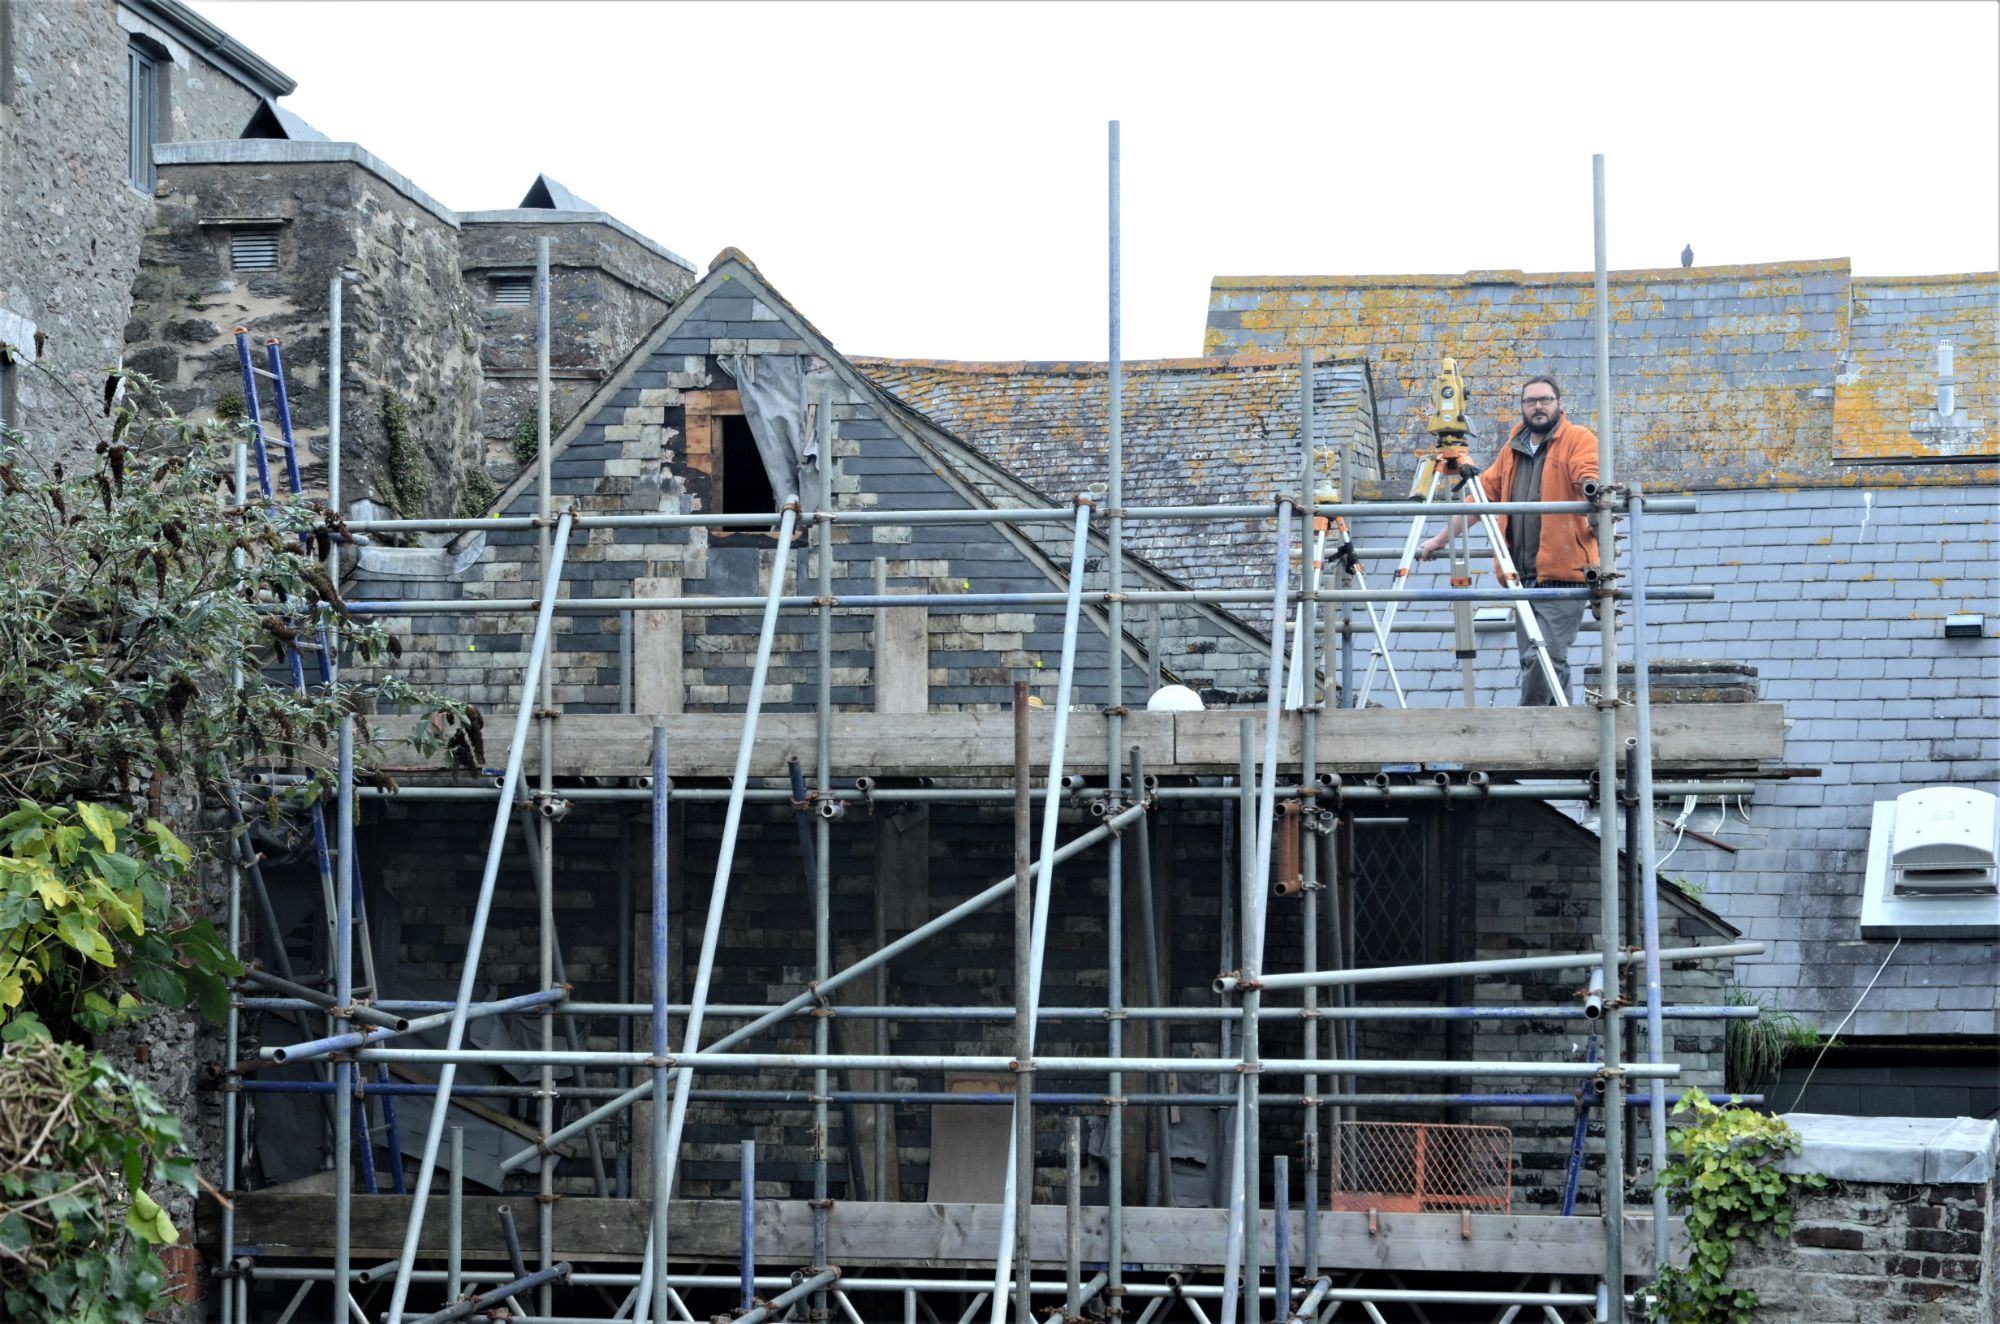 Refurbishment of historic building in Plymouth